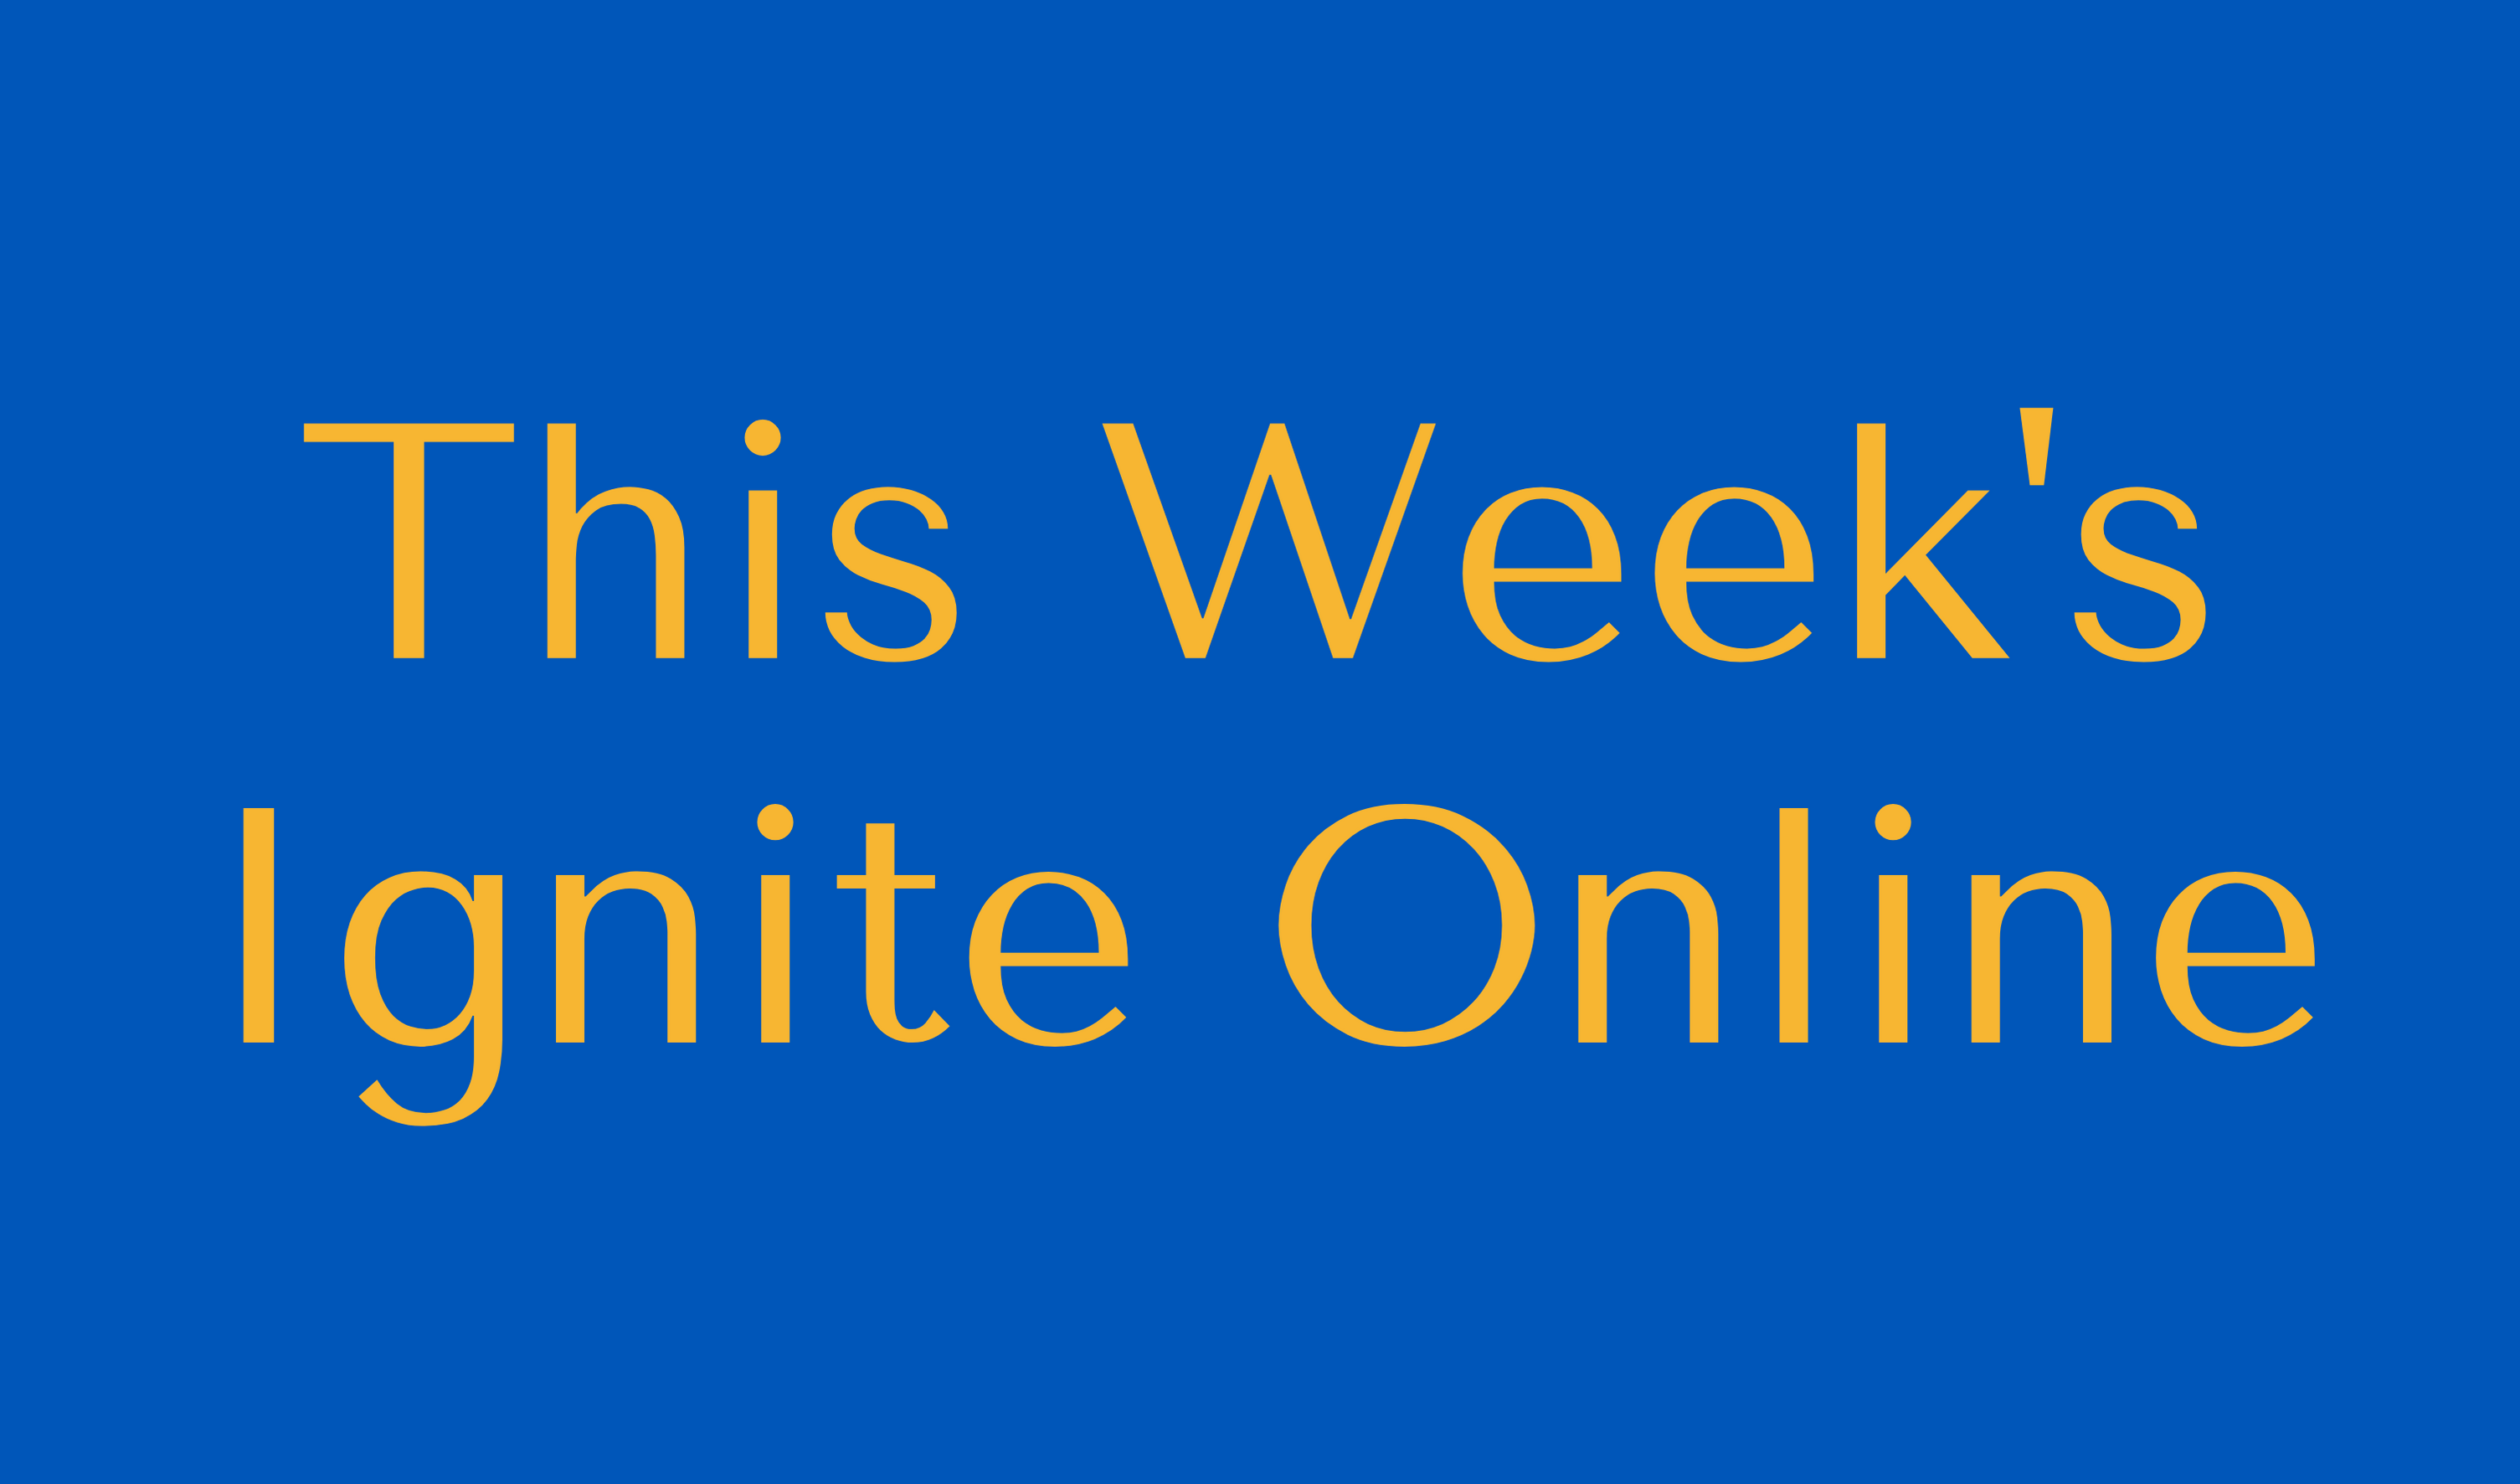 This Week's Ignite Online Button